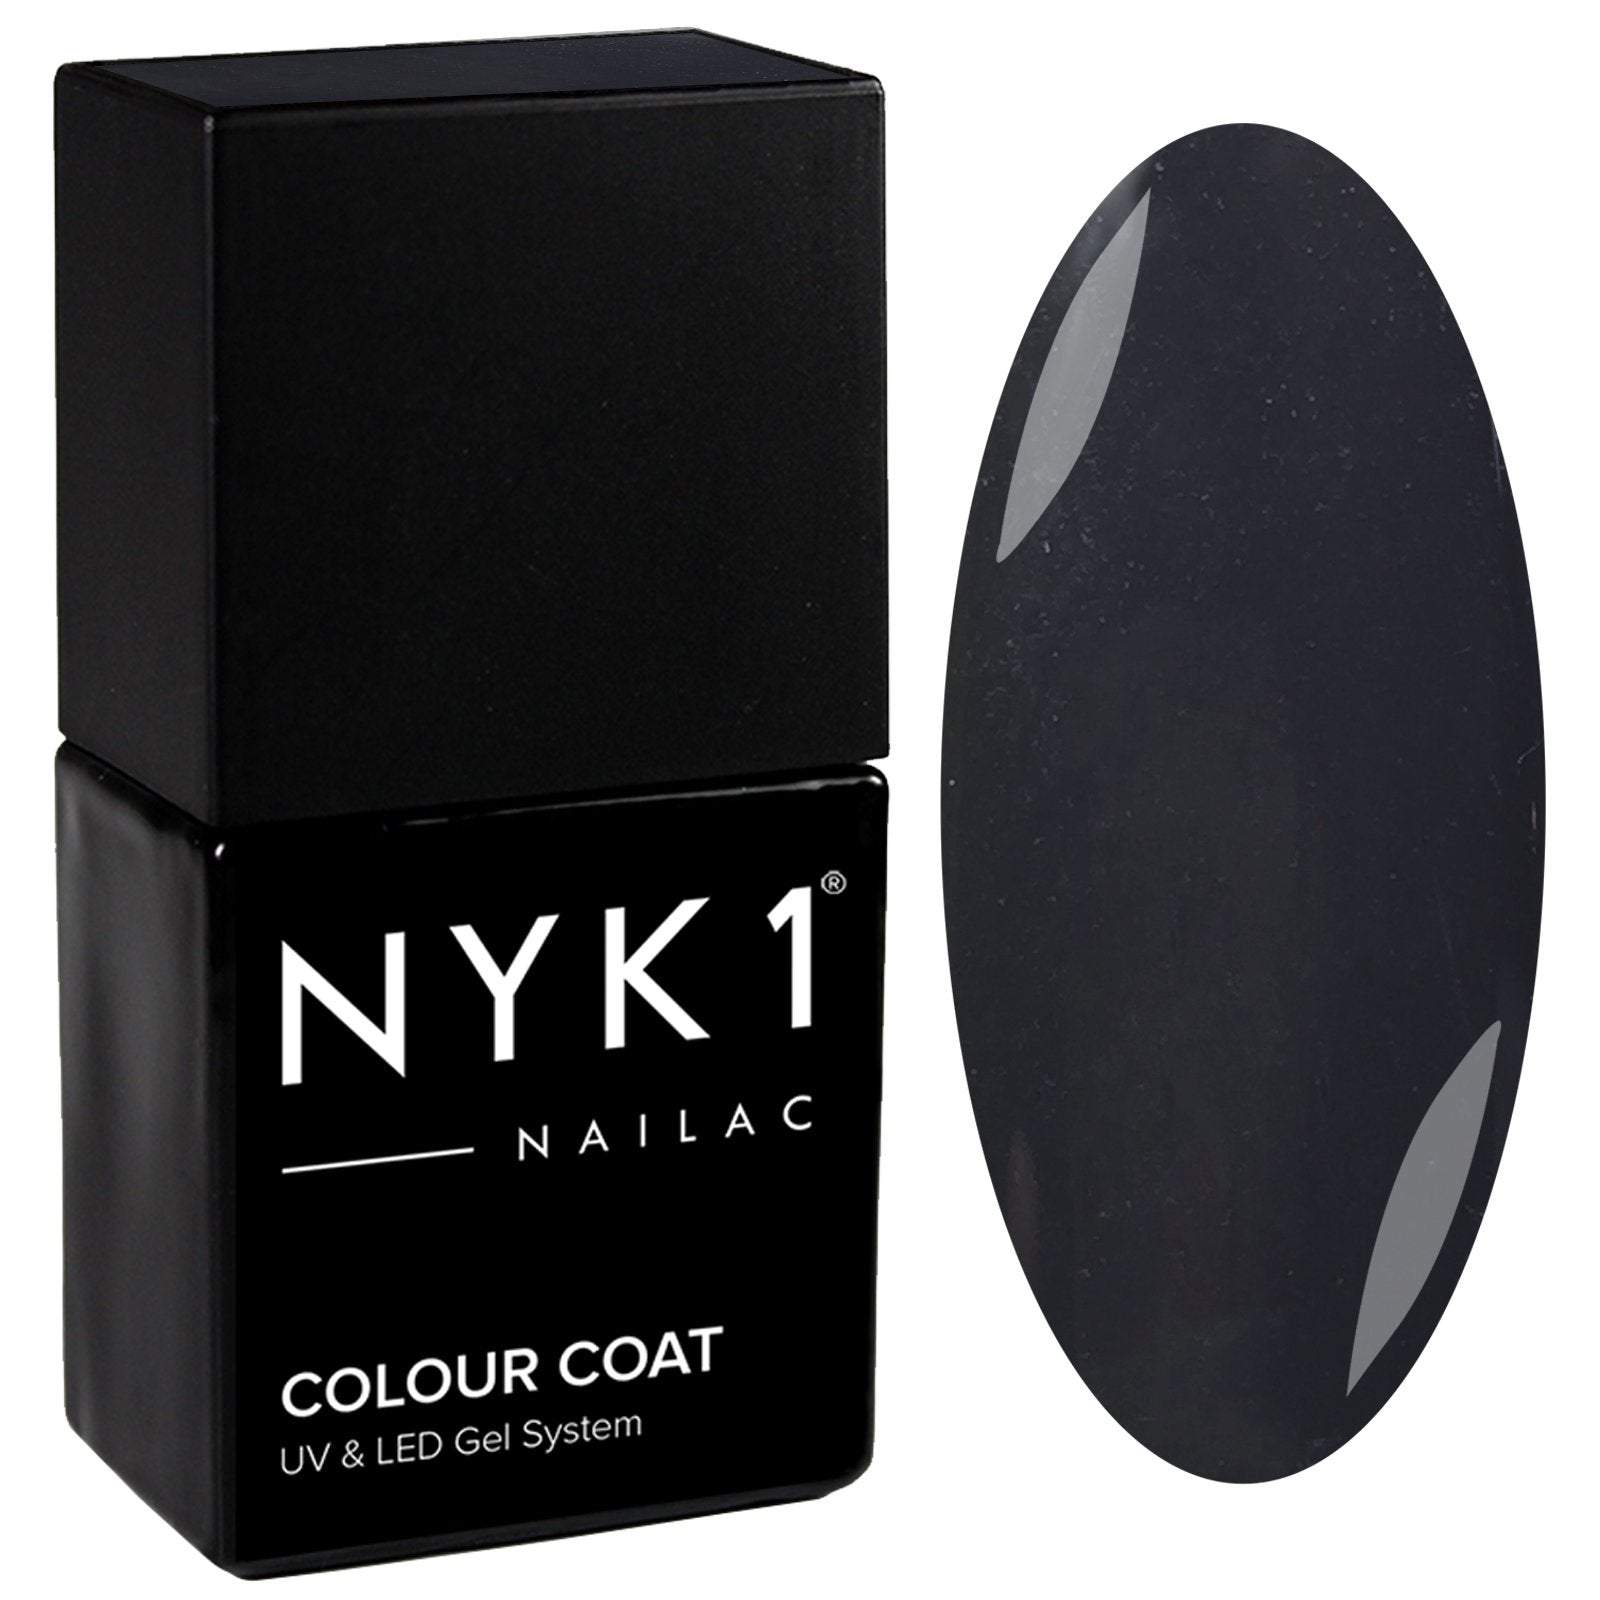 NYK1 Nailac Lead Dark Grey Gel Nail Polish